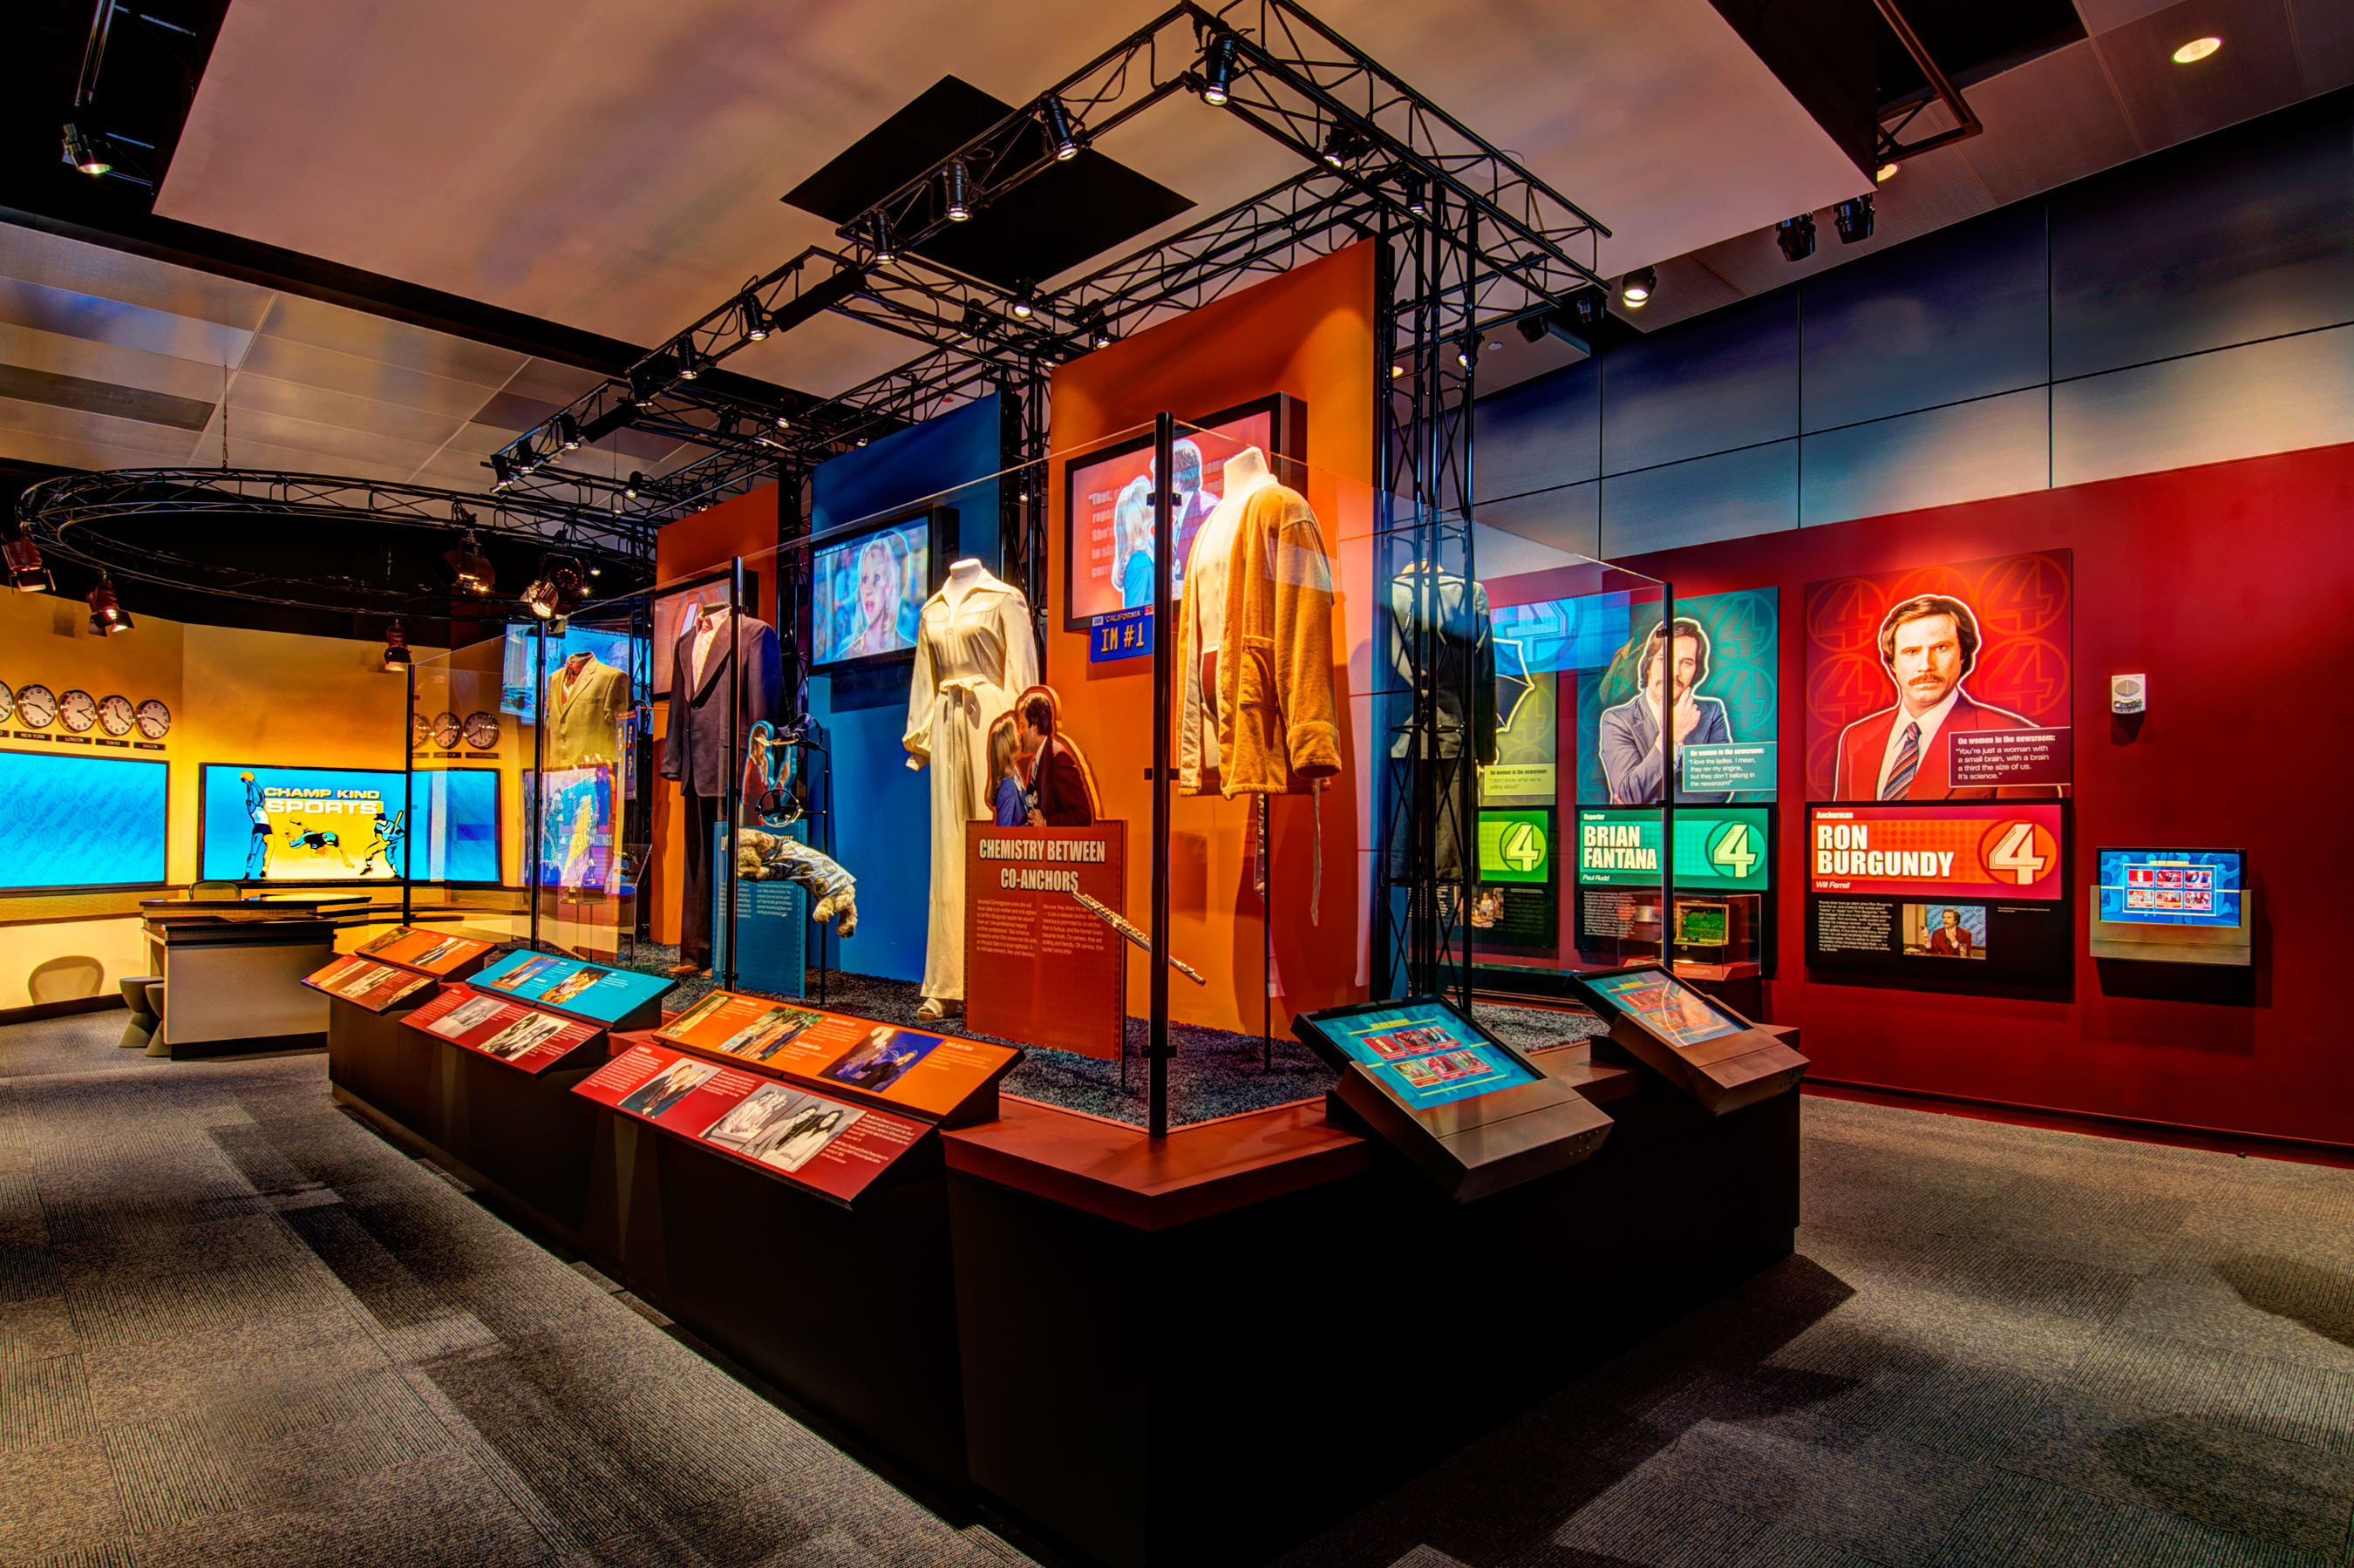 ANCHORMAN: The Exhibit Opens At the Newseum